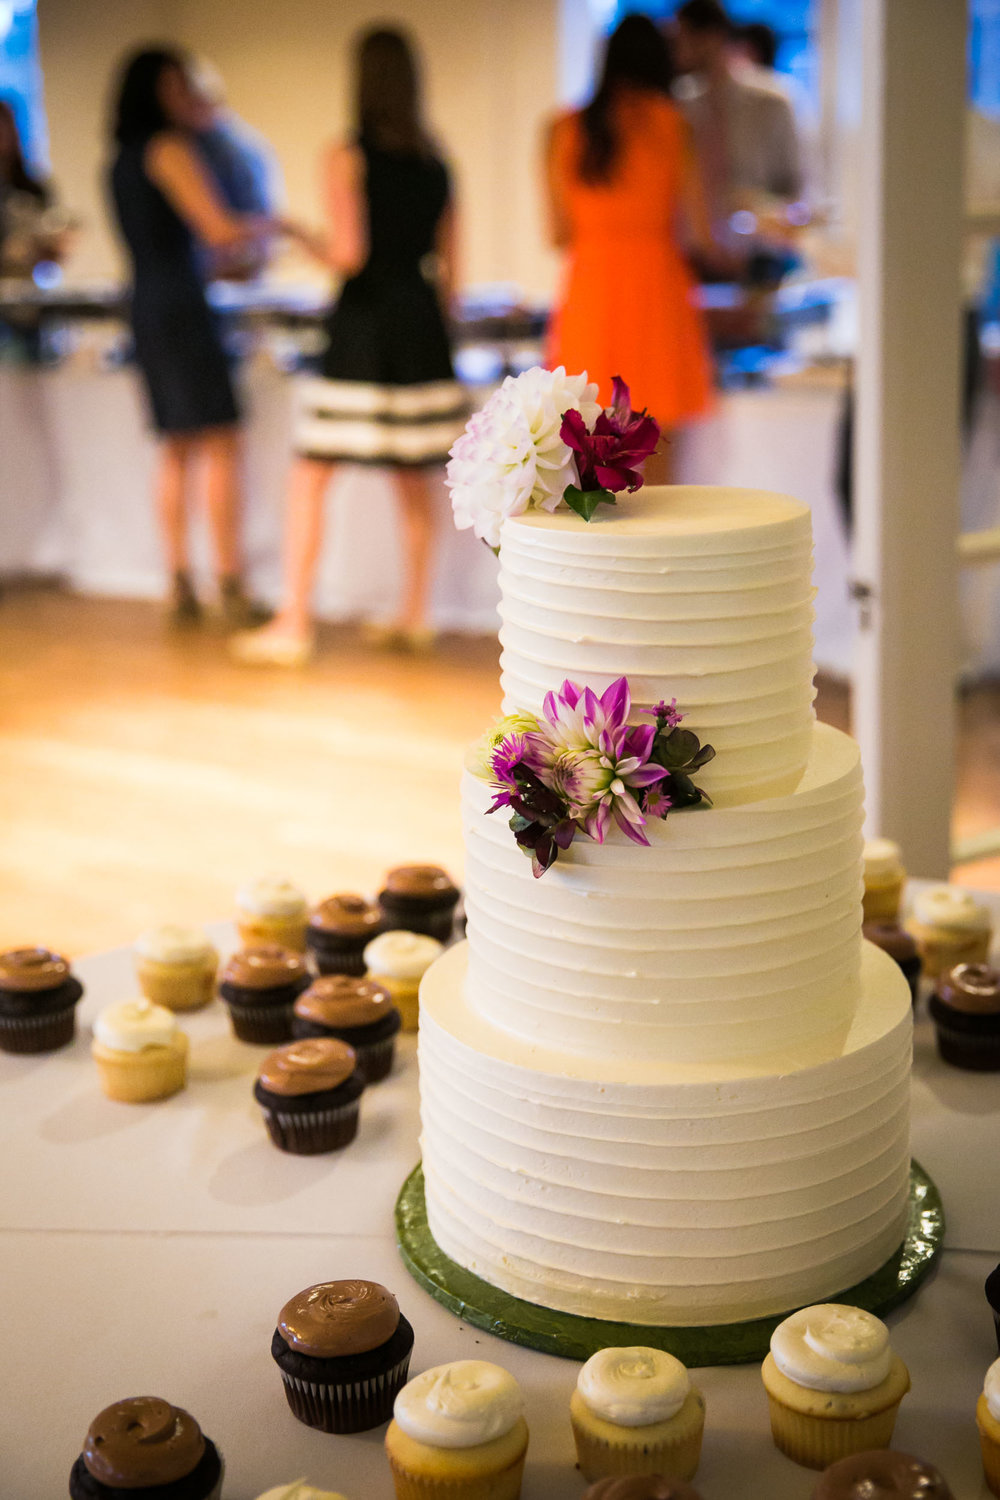 Simple wedding cake | The Hall at Greenlake Wedding Reception Photo | By G. Lin Photography